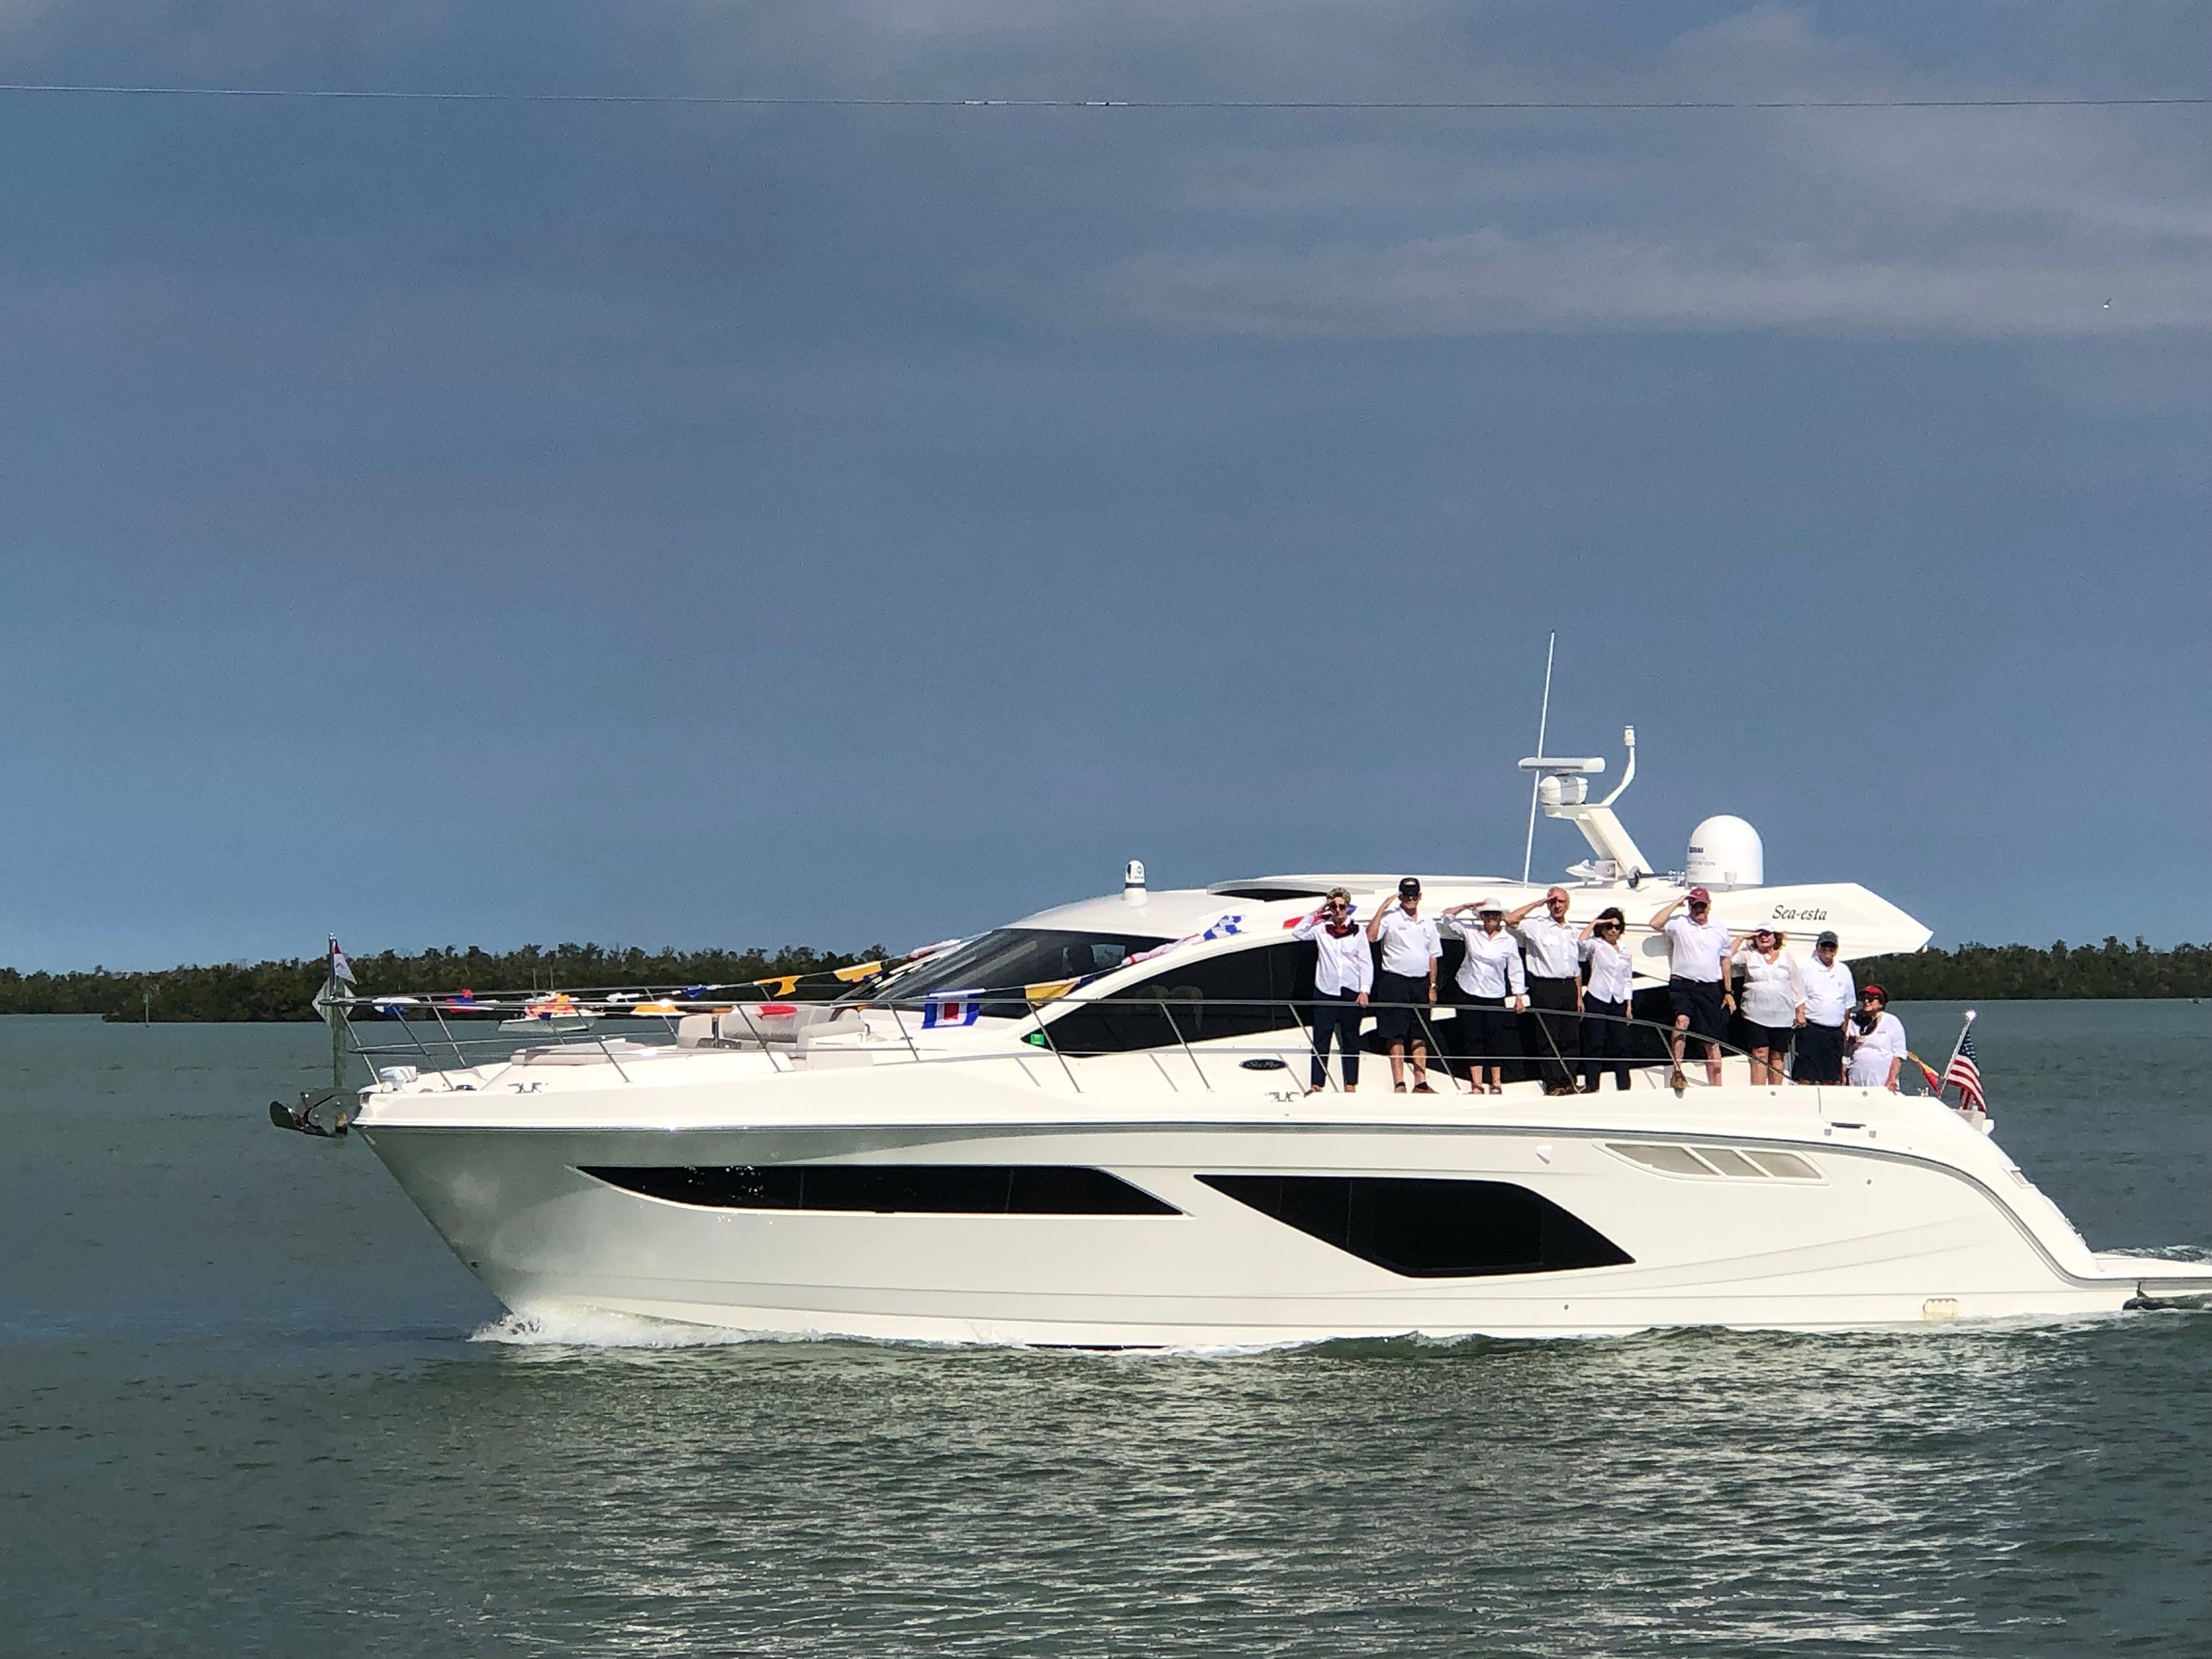 The crew of Sea-esta, owned by Dave and Ellie Everitt, salute as they pass the Marco Island Yacht Club.